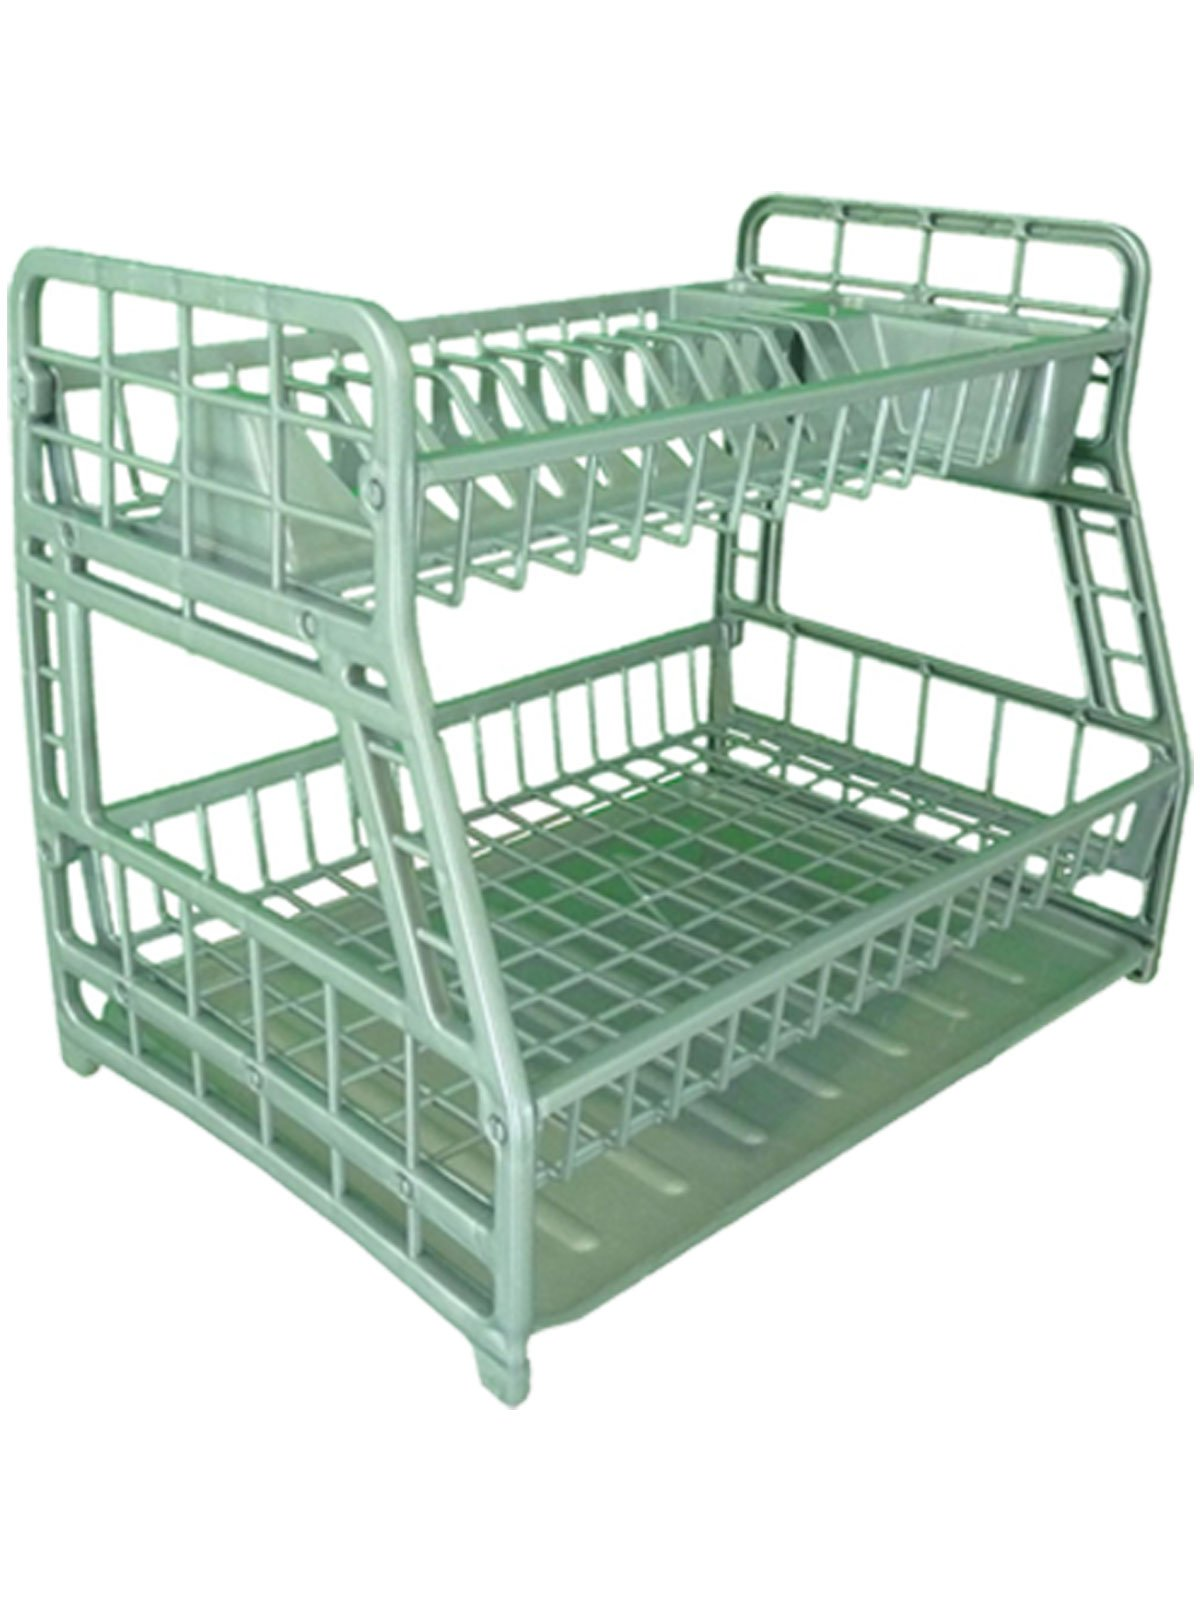 2-Tier Plastic Plated Dish Drainer Glasses Crockery Cutlery Utensil Drainer with Drip Removable Tray (Silver)